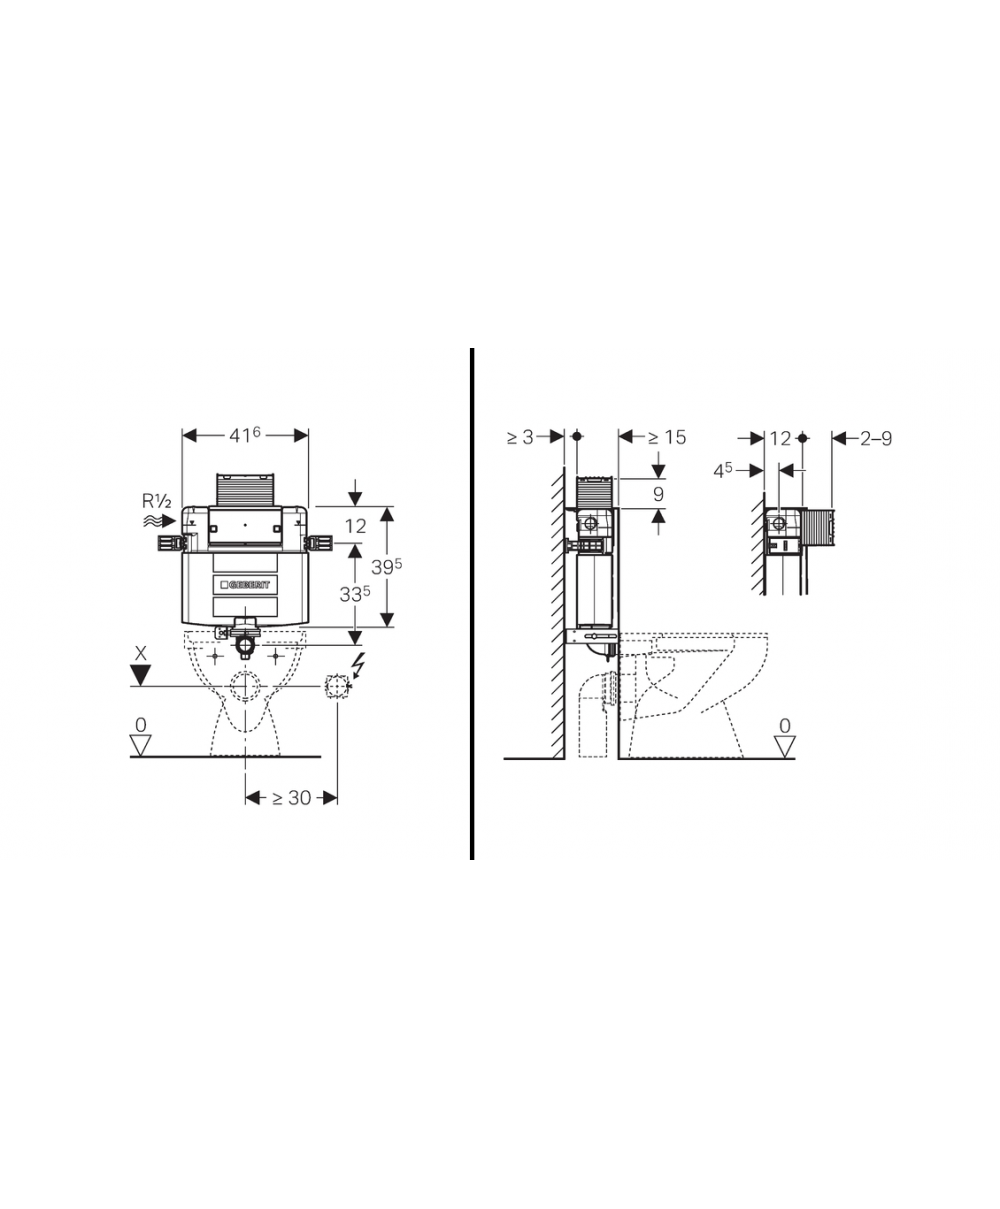 Omega Concealed Cistern 12cm 6 3 Litres Installation Height 82cm Keyless Entry Wiring Diagram Geberit